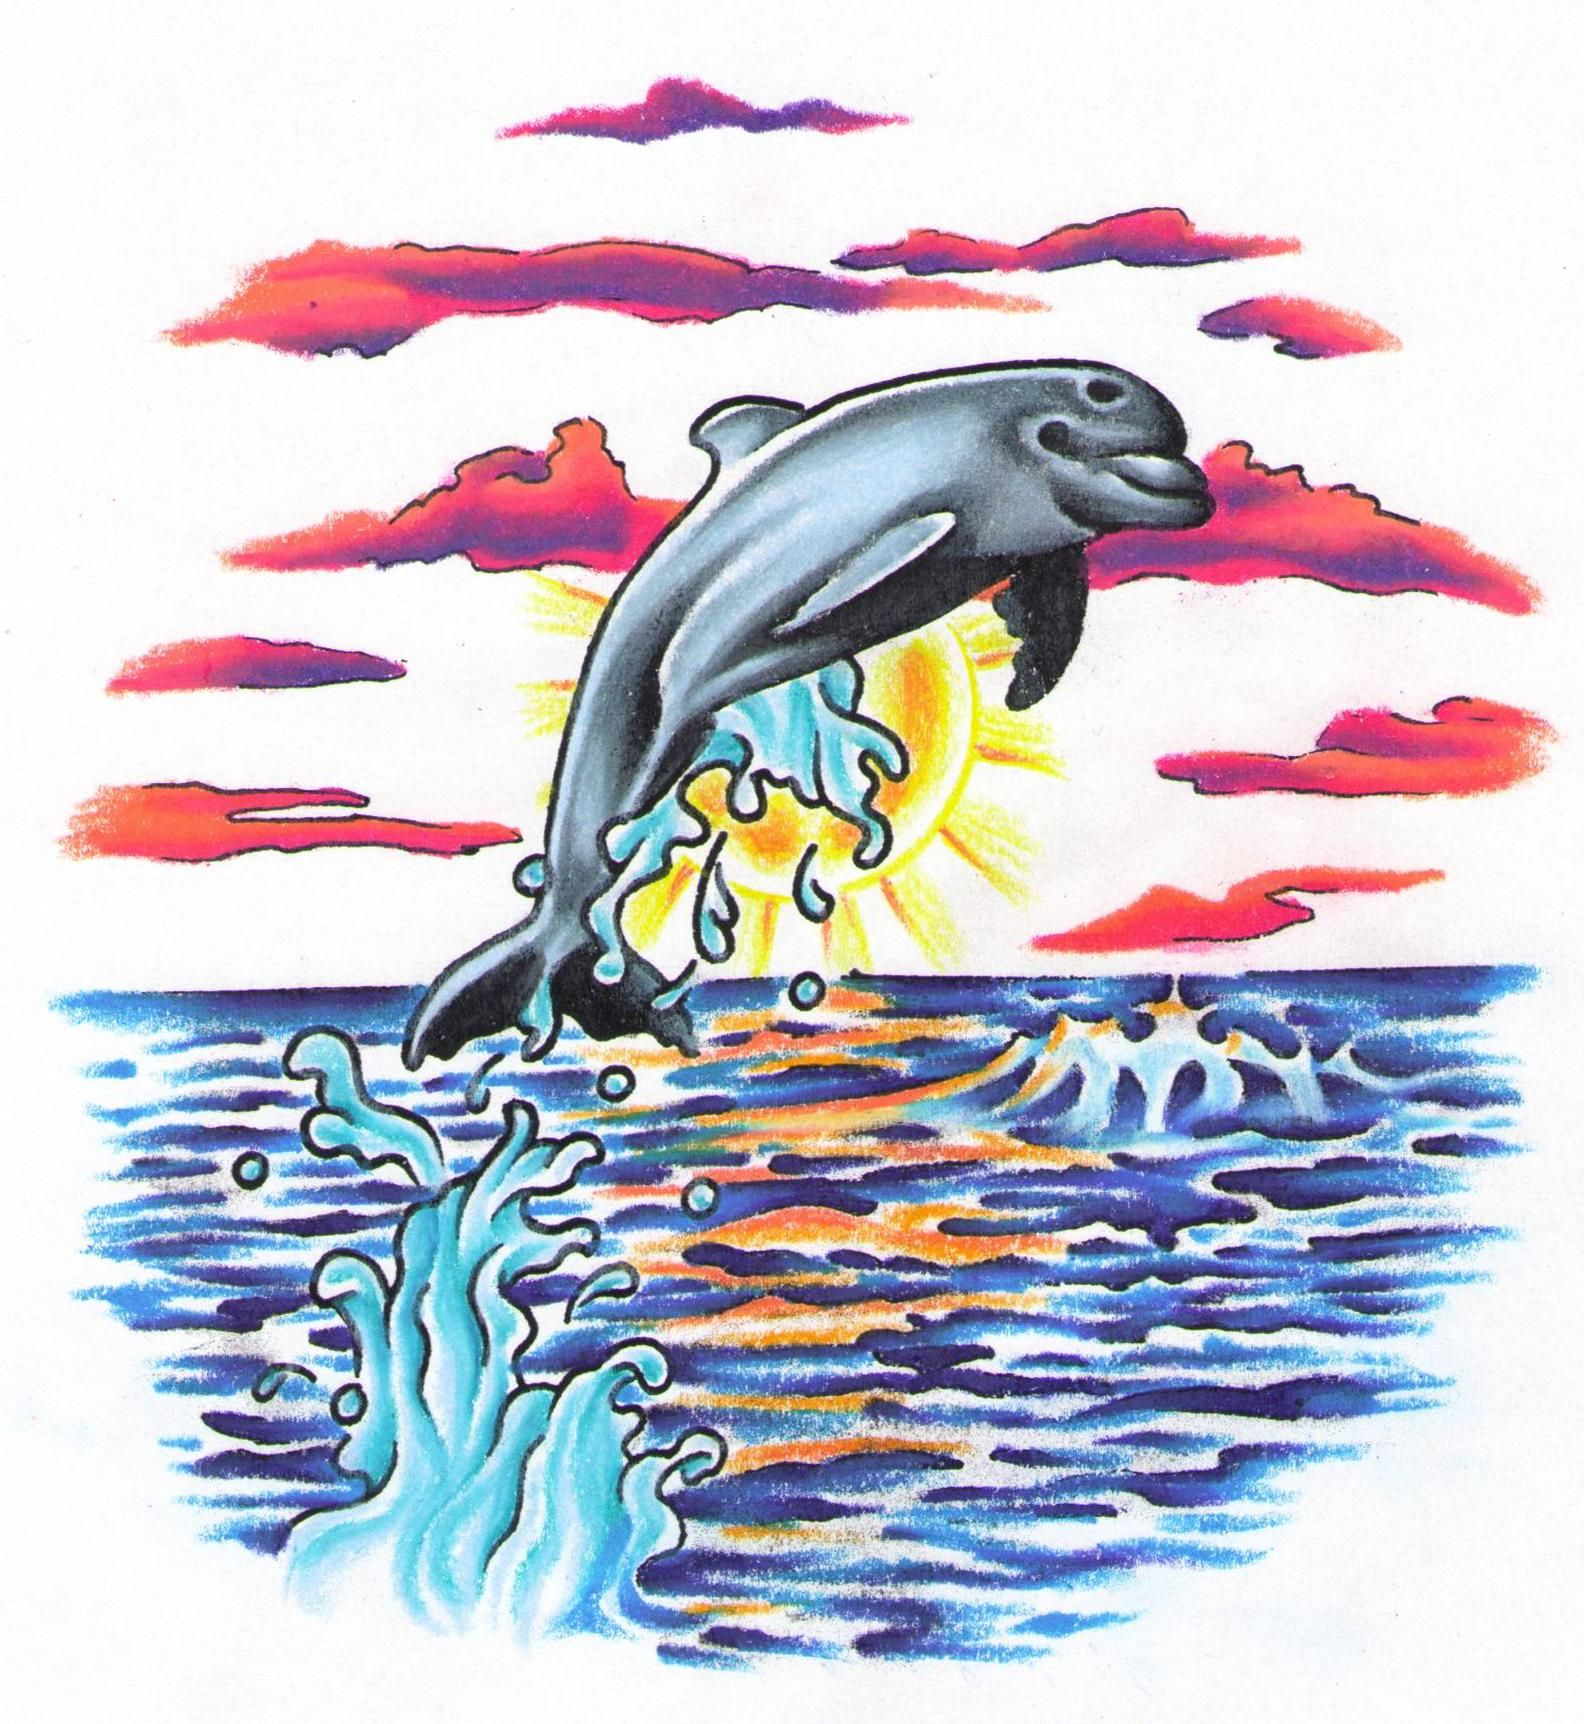 Pics photos dolphin tattoo design tattoos art and designs - Dolphin Tattoo Design Trina Mink Color Water Splash Peace Art Clouds Drawing